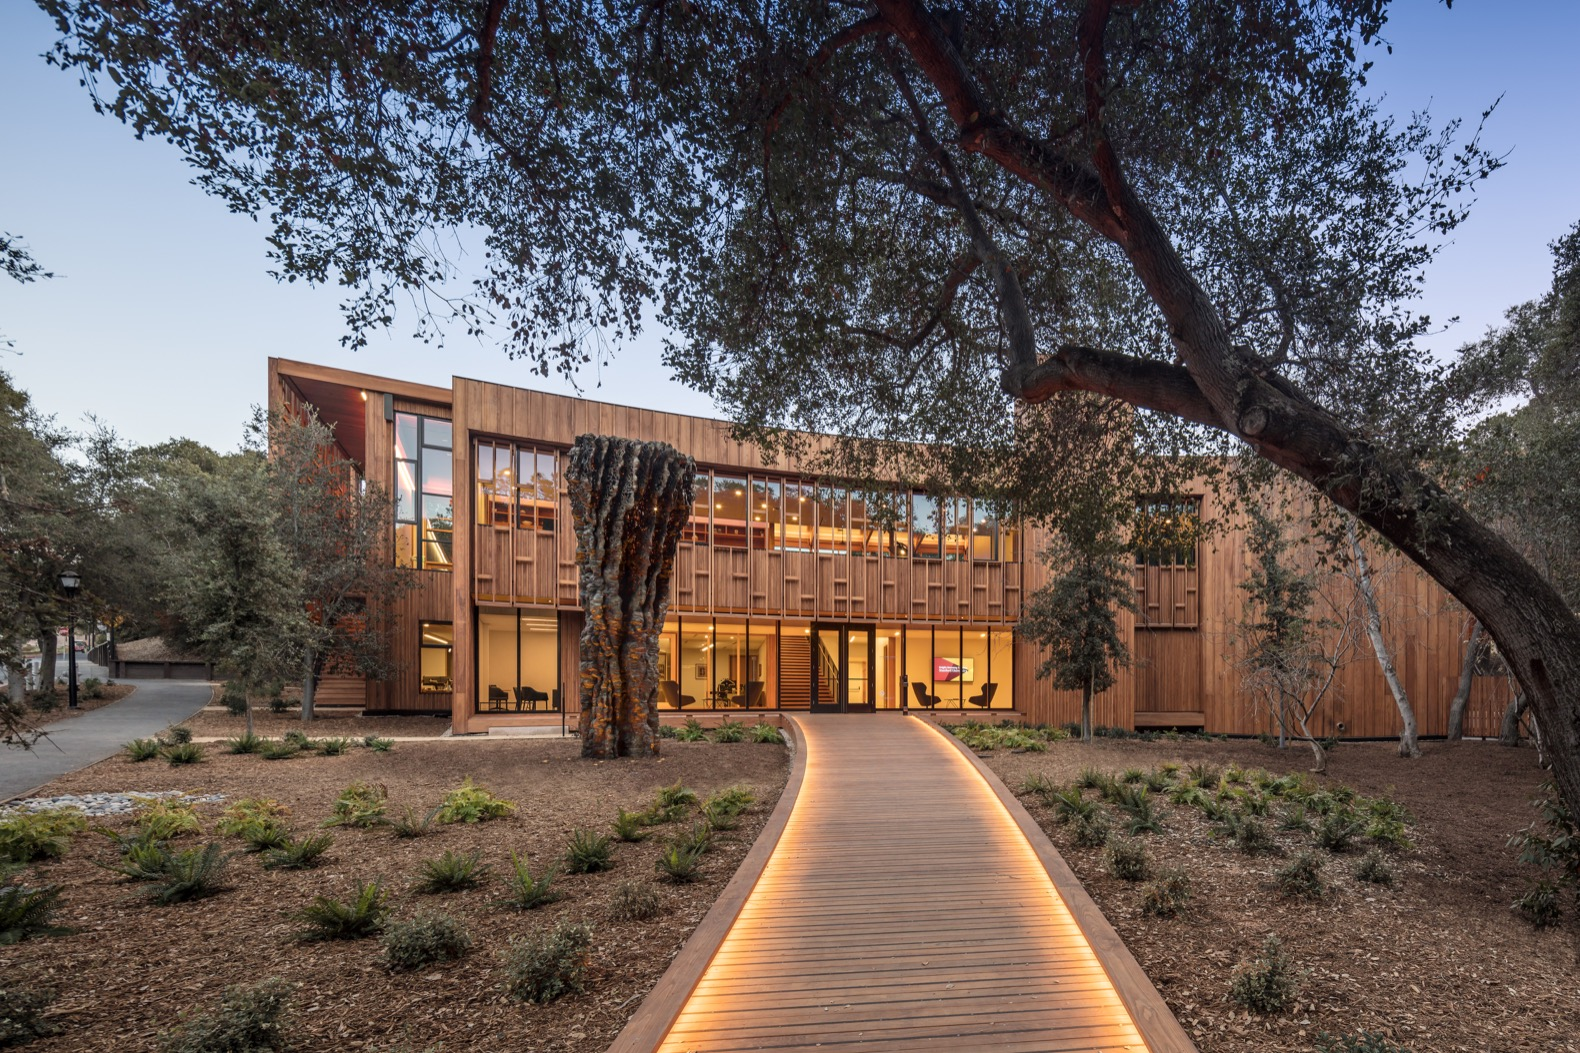 Stanford's sustainable scholars building embraces the California landscape